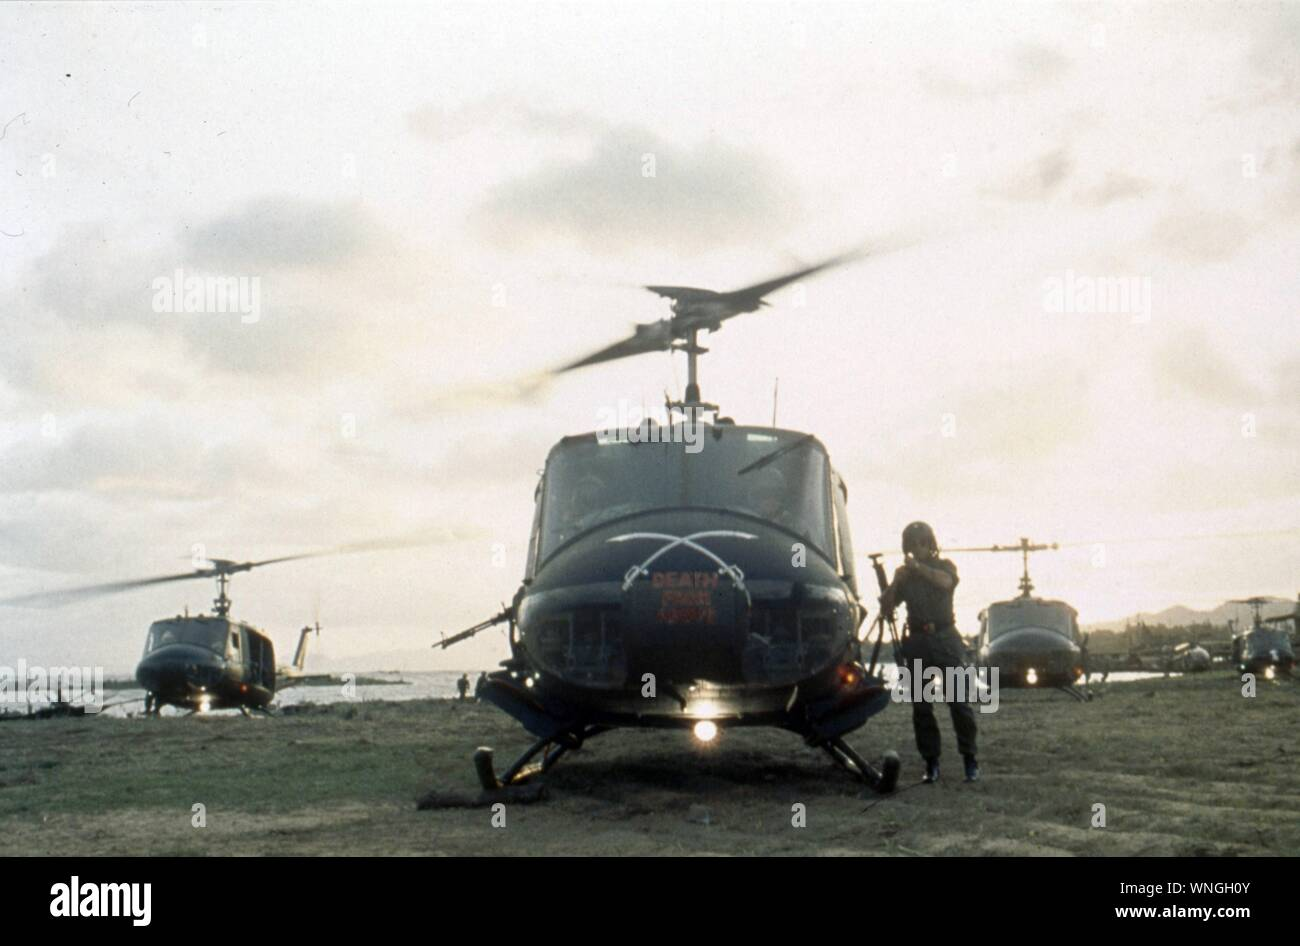 Apocalypse Now Helicopter High Resolution Stock Photography And Images Alamy